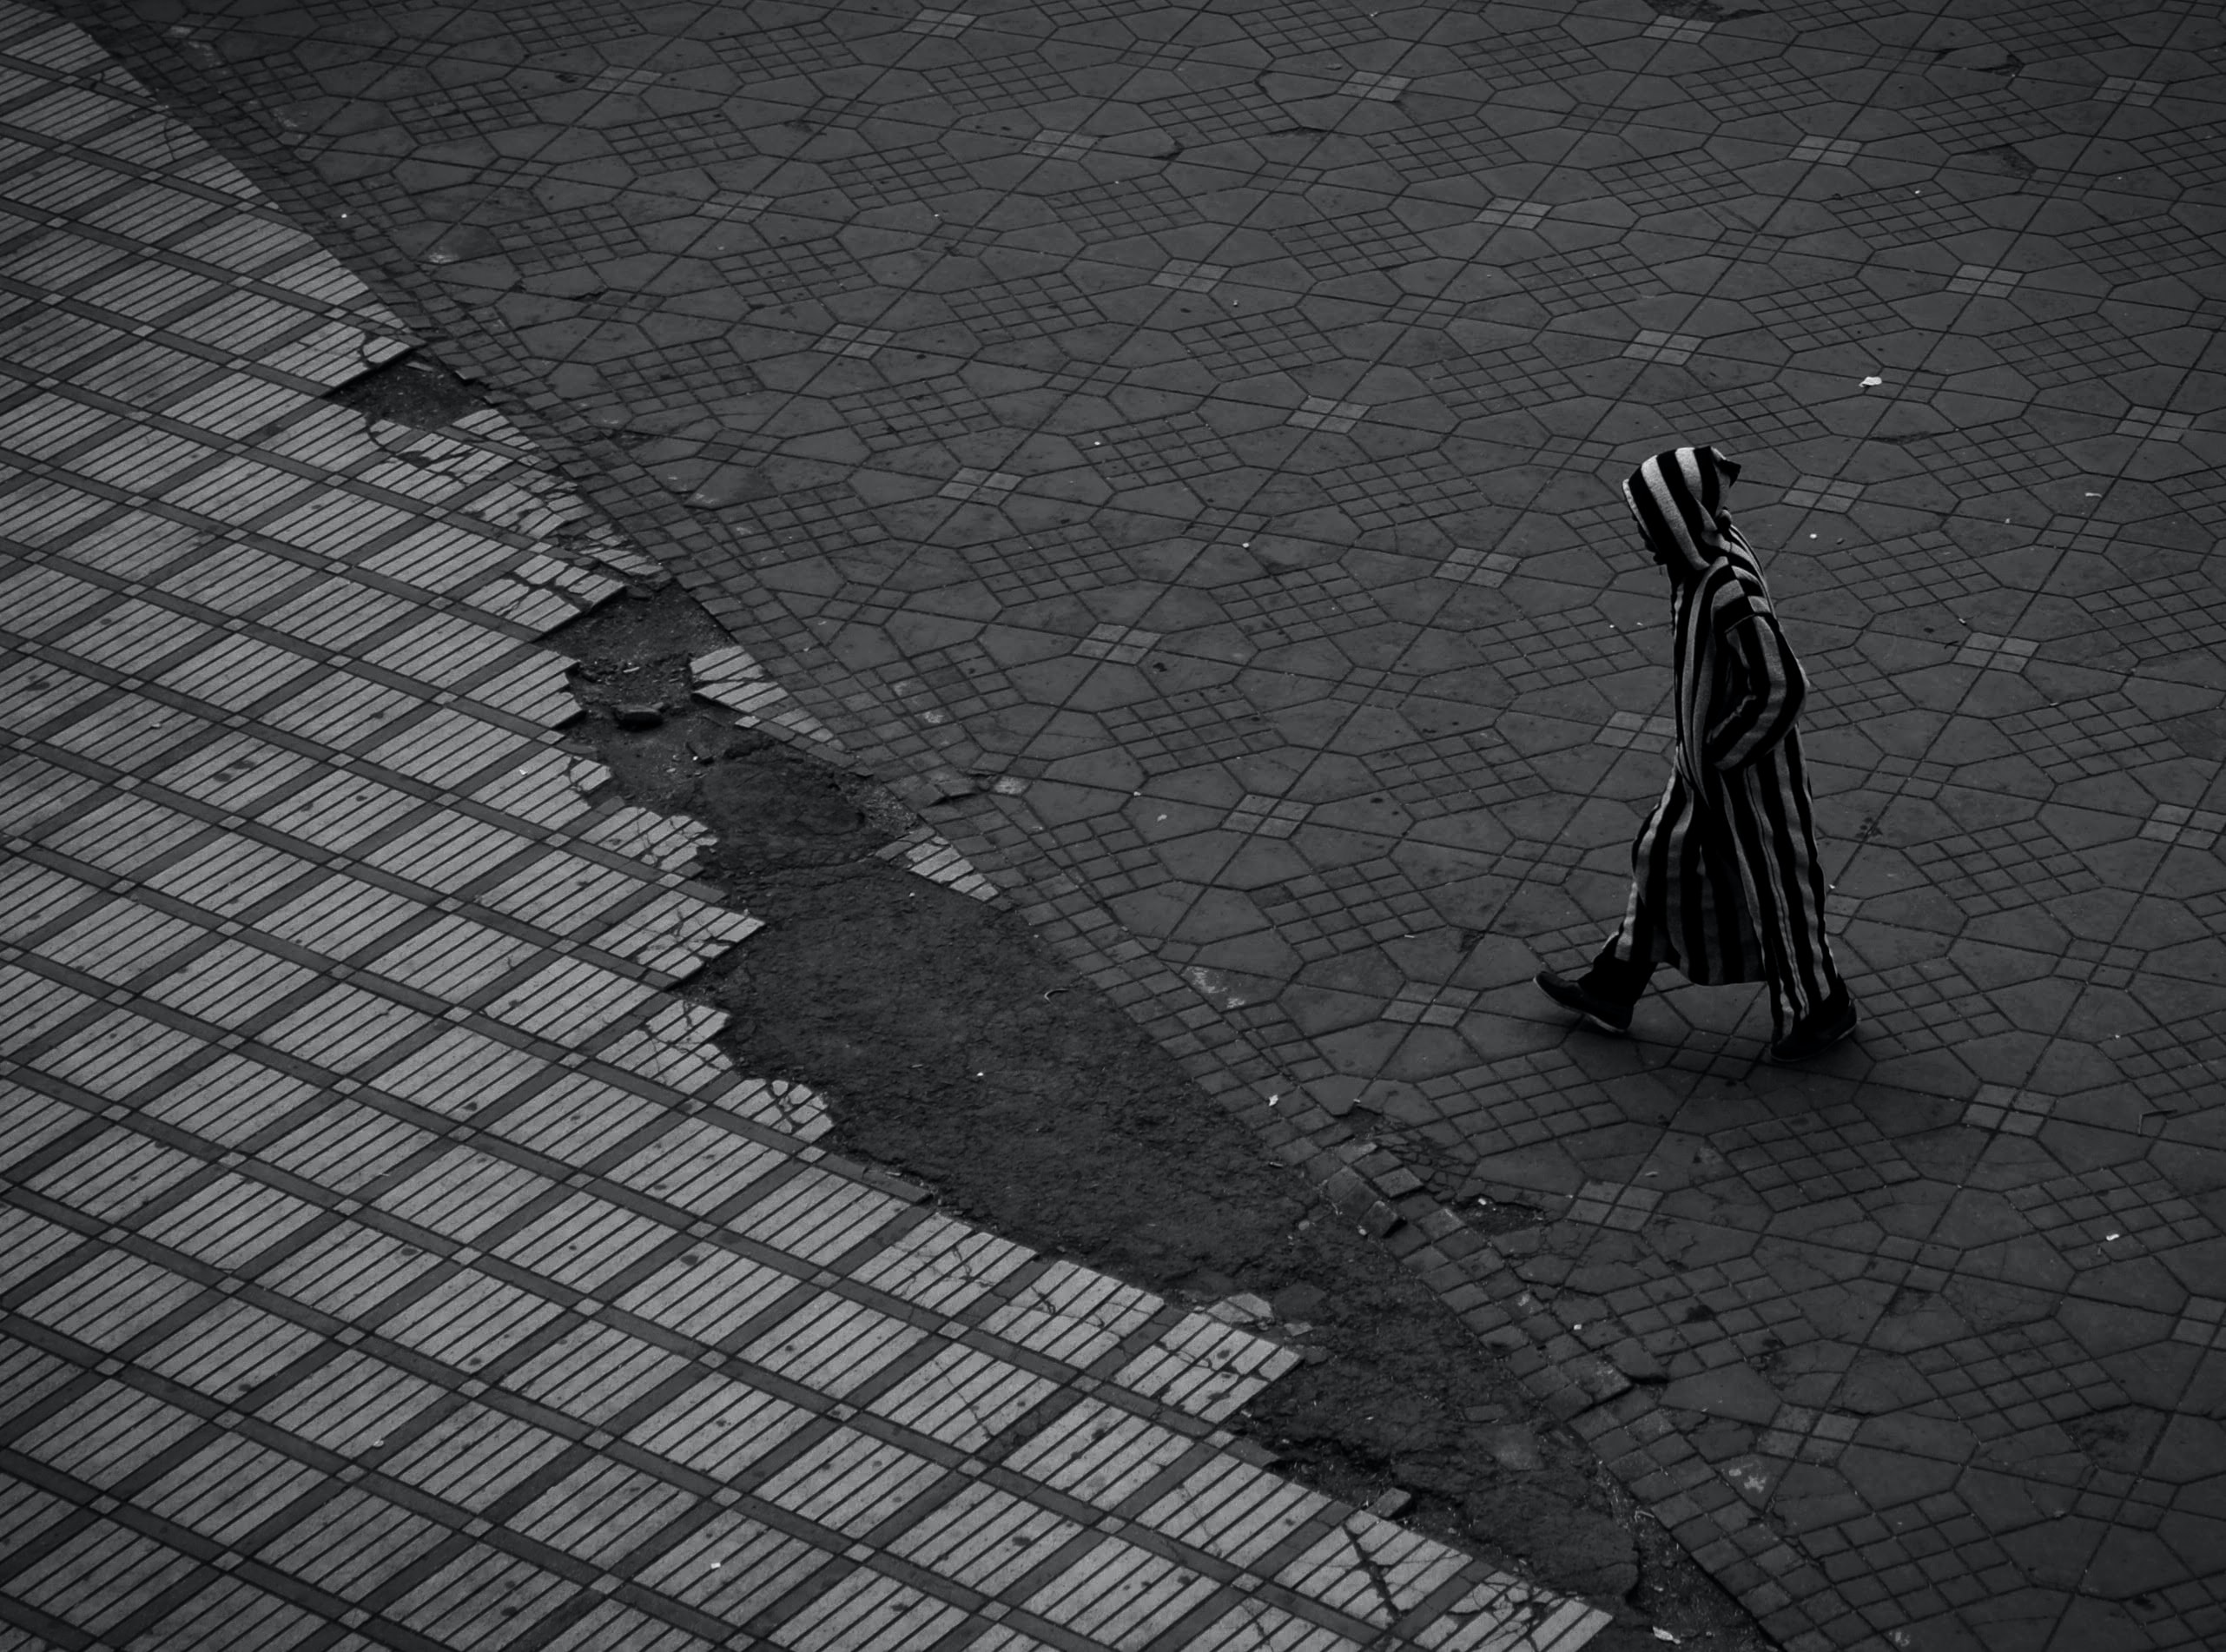 An urban person walking on a sidewalk in black and white, Marrakesh